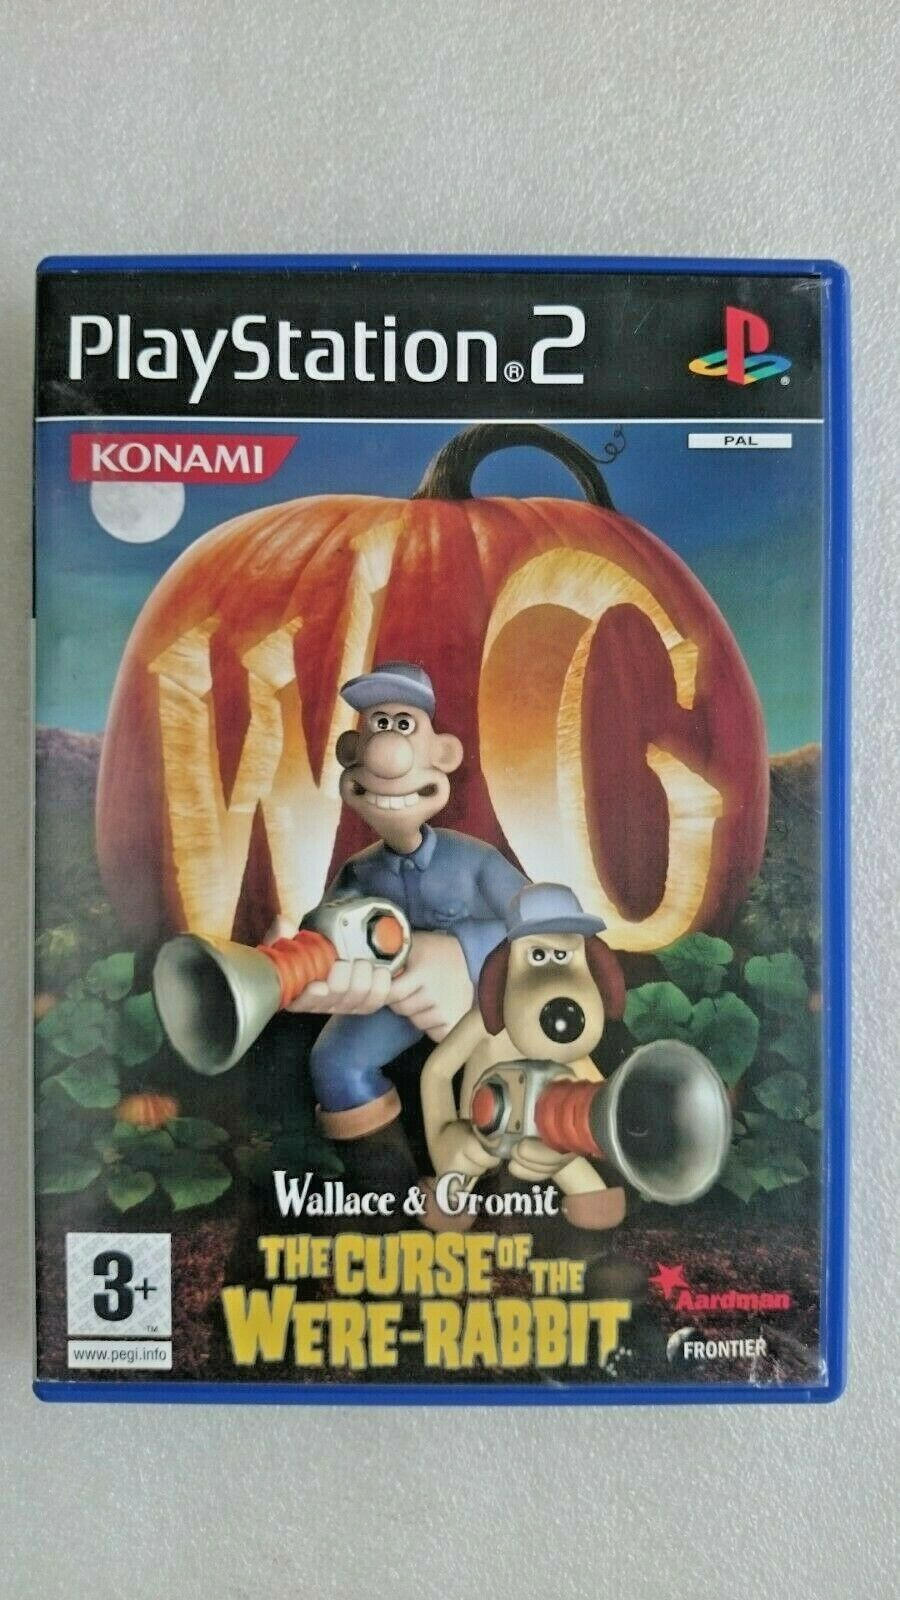 Wallace & Gromit The Curse of the Were-Rabbit (Sony PlayStation 2, 2005)